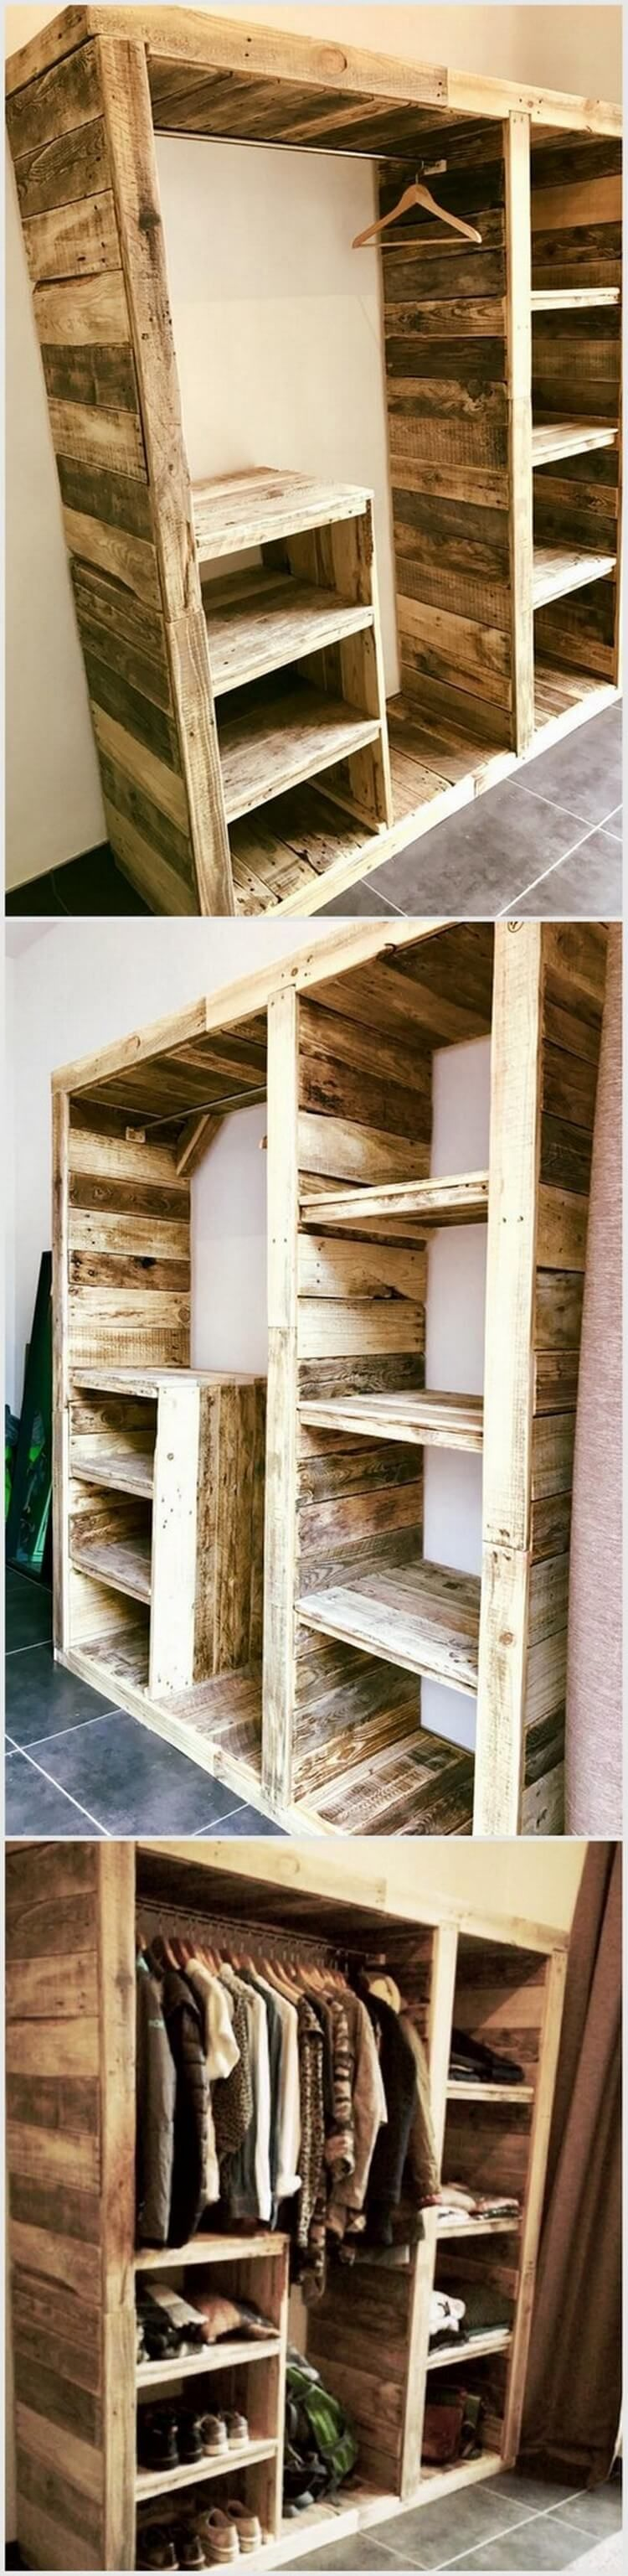 Recycling Möbel Selber Bauen Recycled Pallet Wardrobe Meubles Pinterest Palette Holz Und